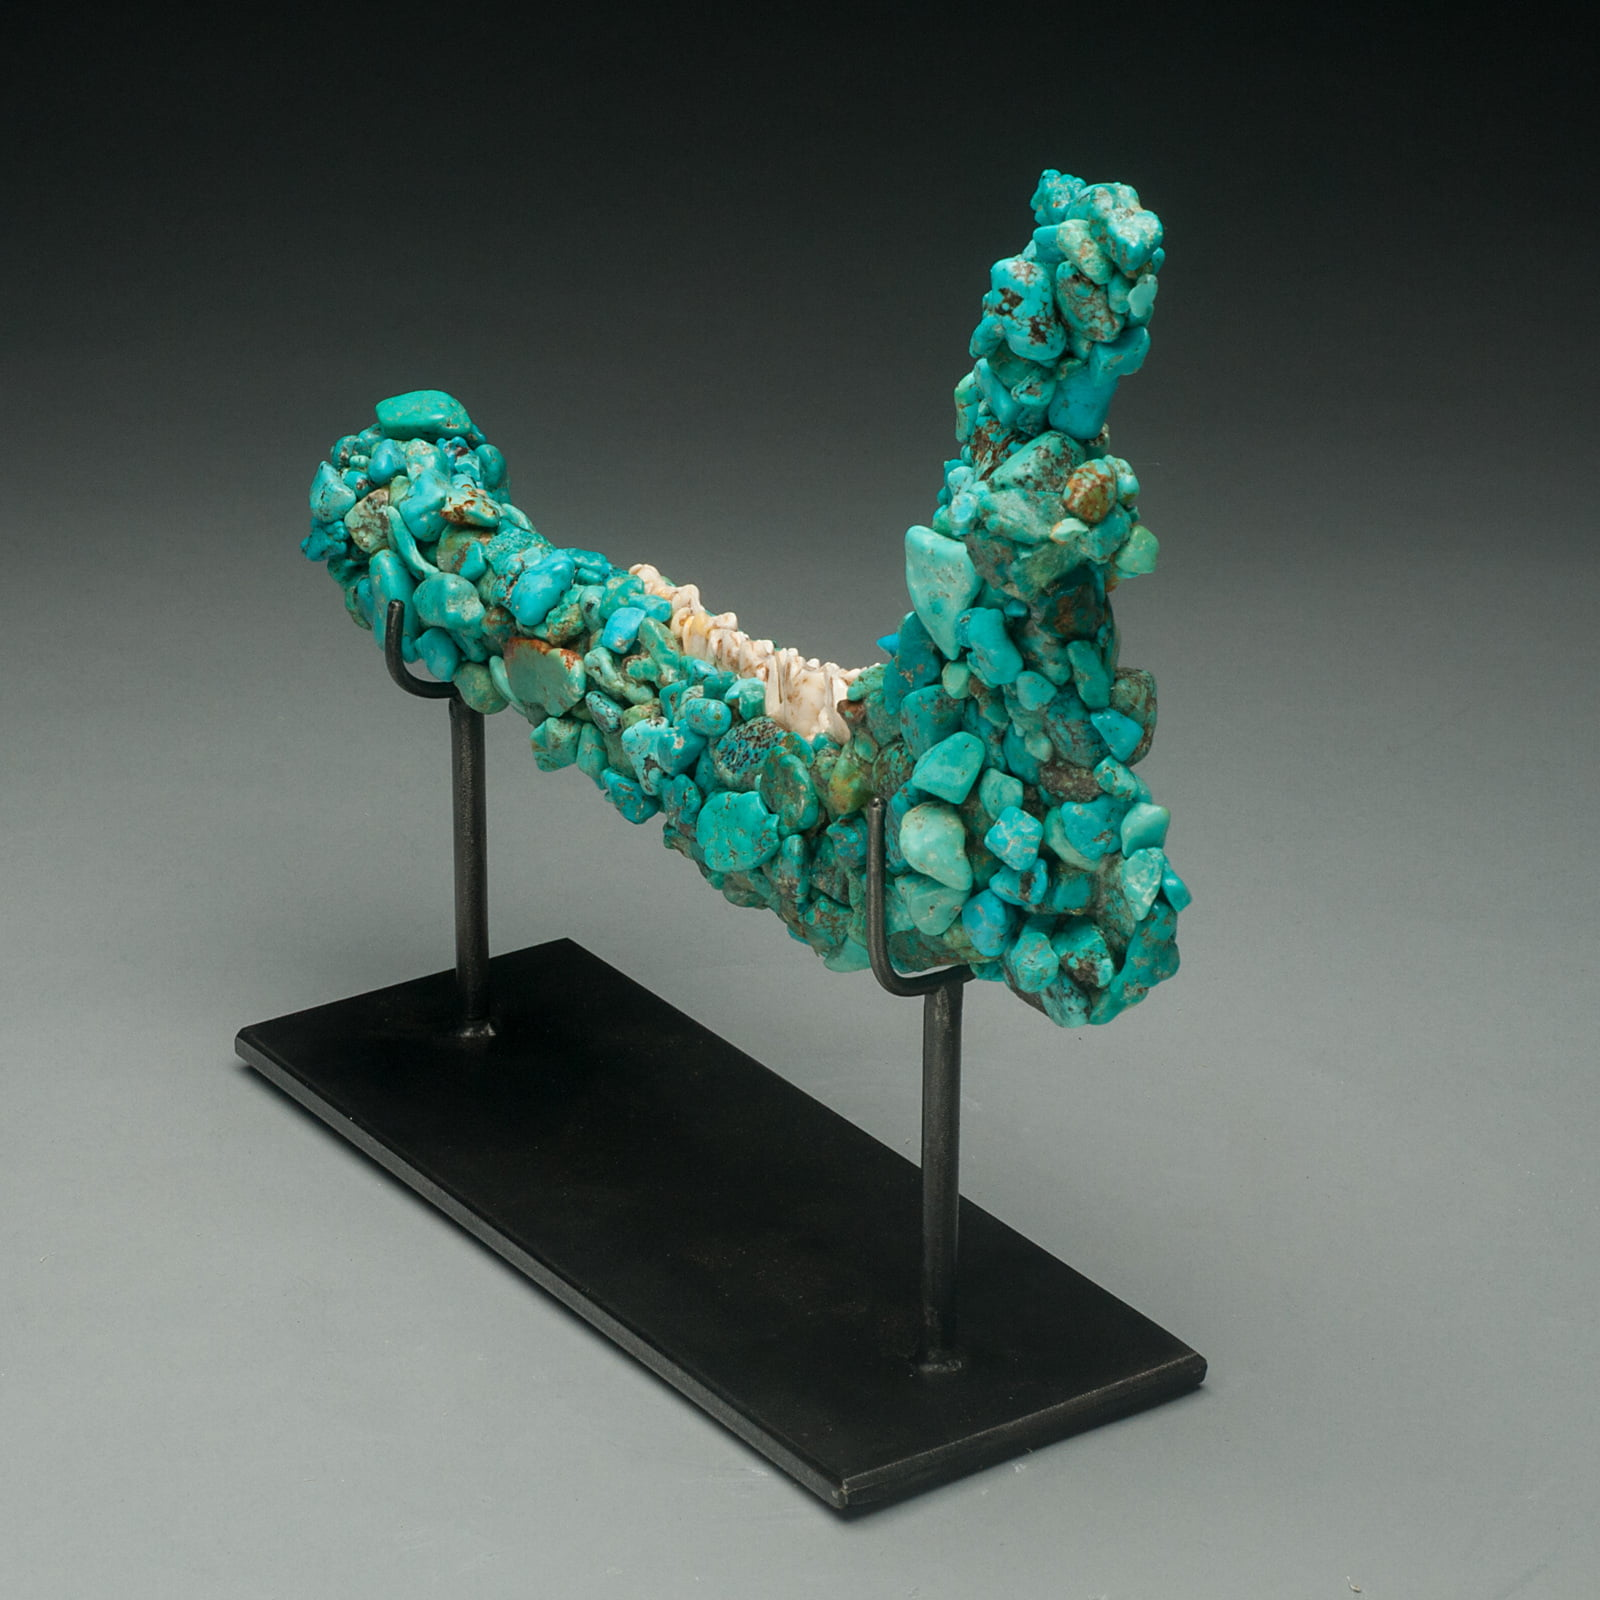 #TURQDEER1 Rare Turquoise Encrusted Mule Deer Jaw on a Custom Made Stand